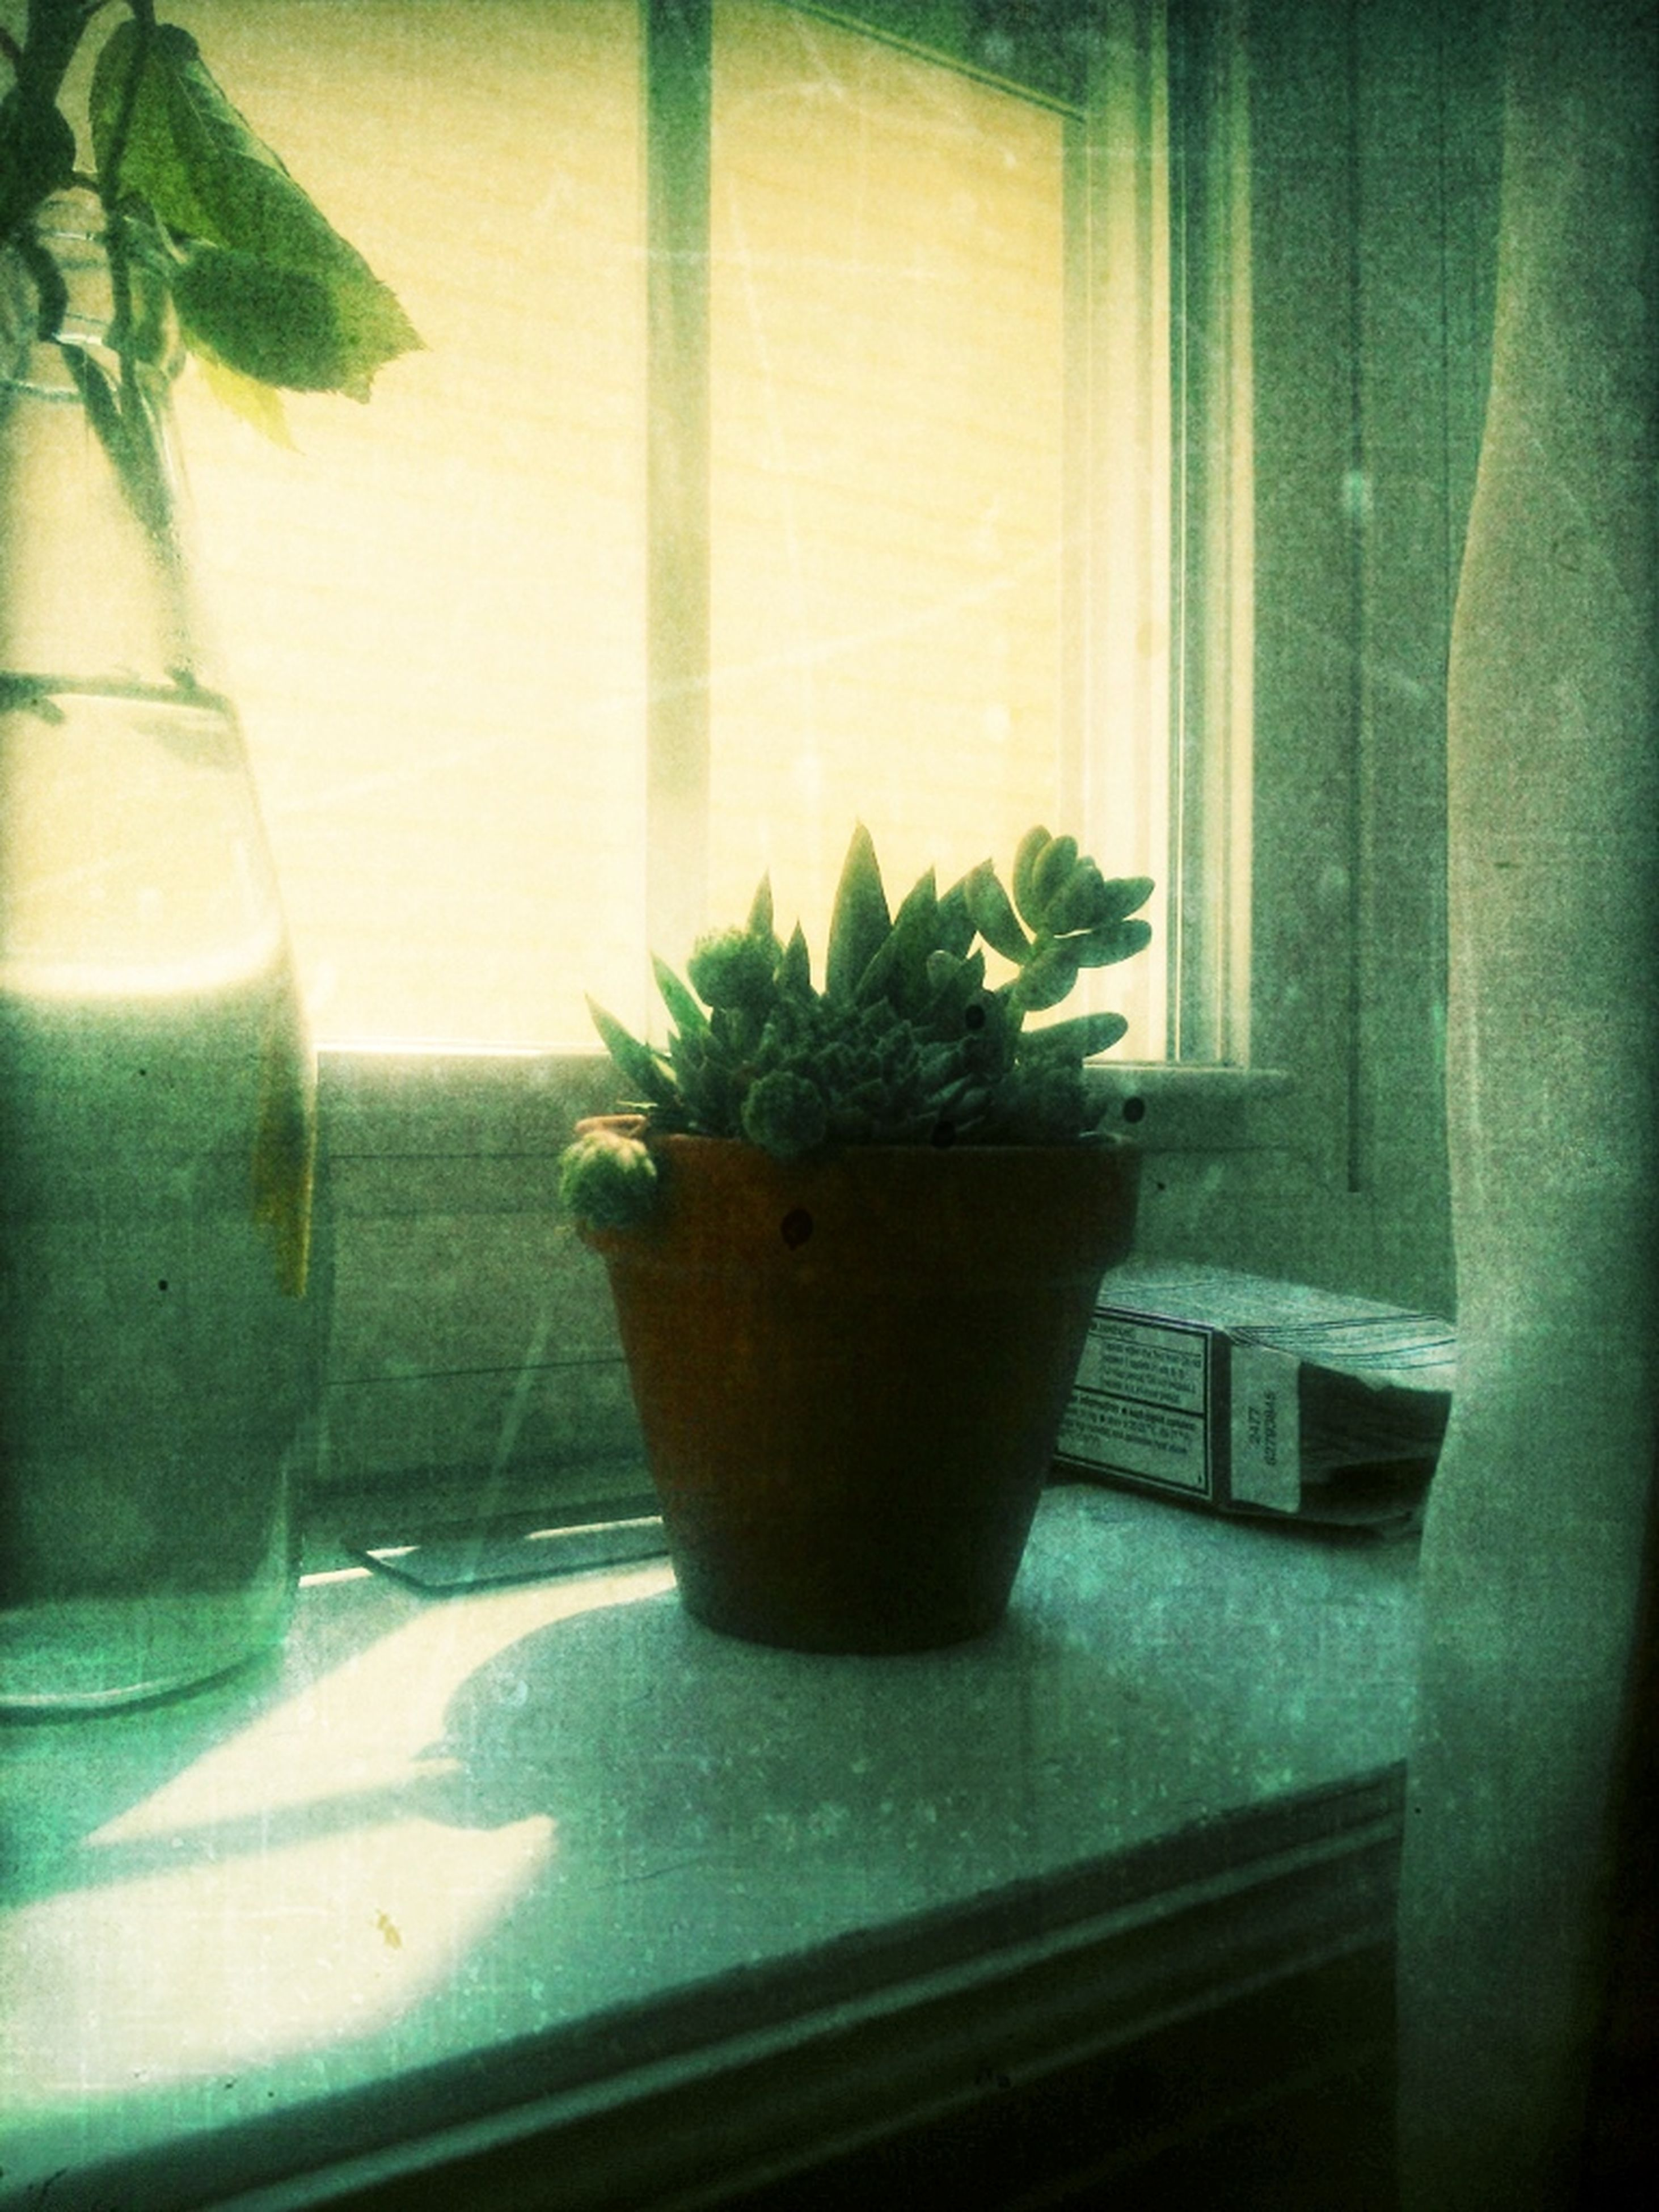 indoors, potted plant, window, plant, growth, glass - material, window sill, table, vase, transparent, home interior, leaf, flower pot, pot plant, freshness, glass, close-up, green color, houseplant, sunlight